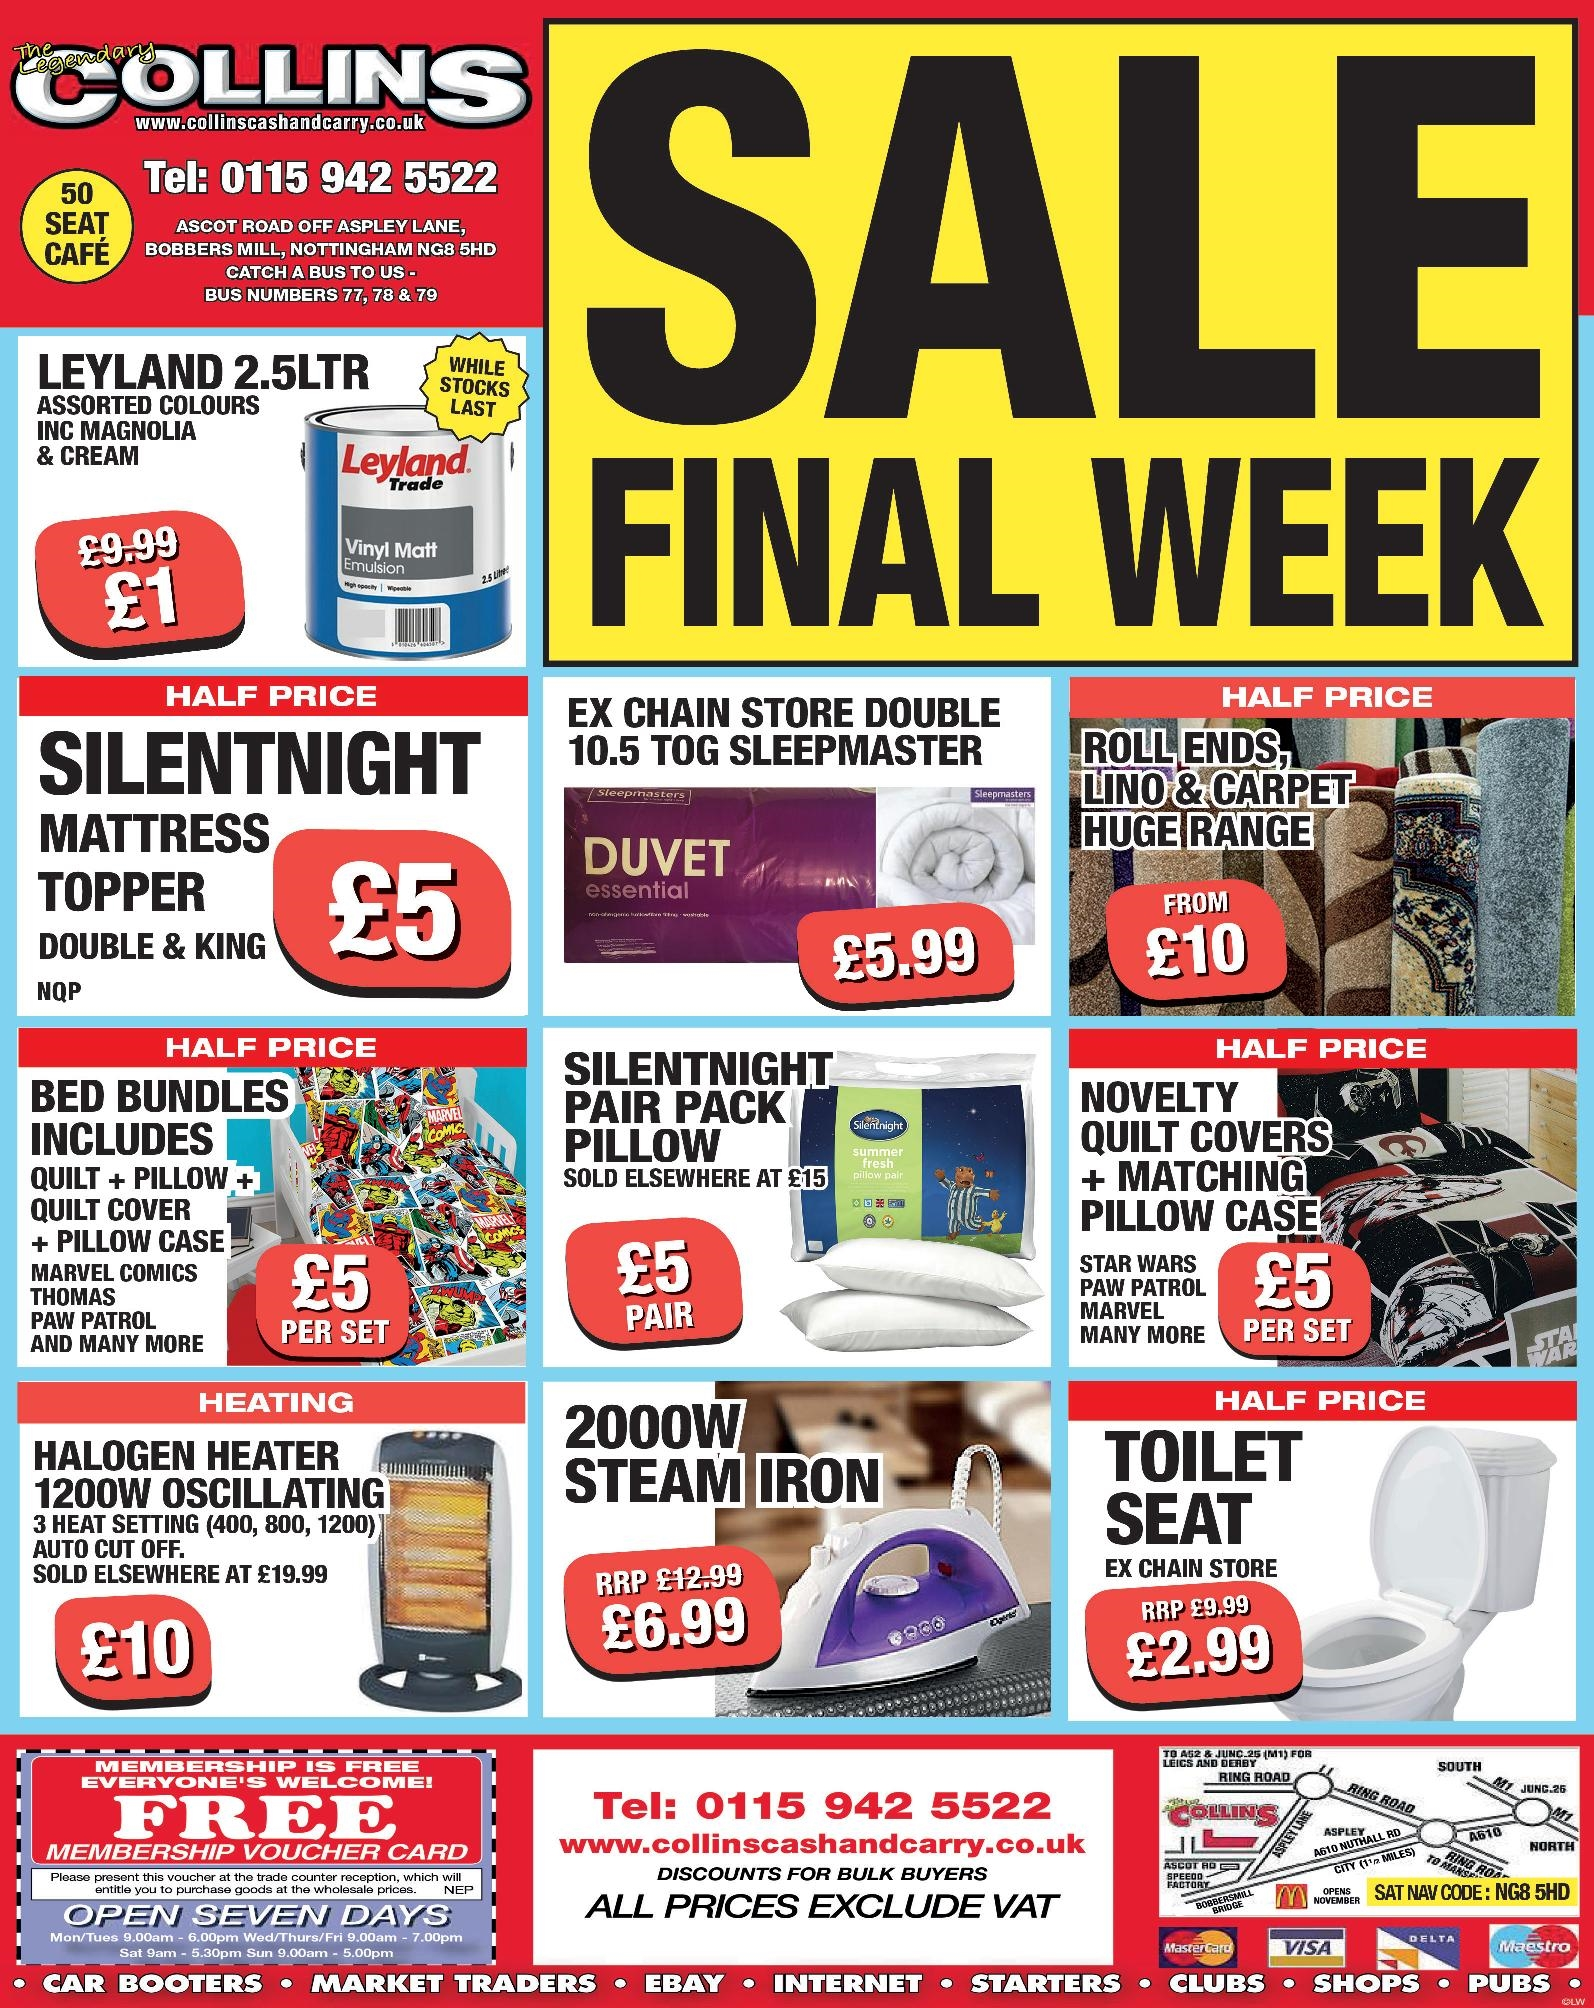 Cold Winter Nights – Weekly Offers at Collins Cash and Carry